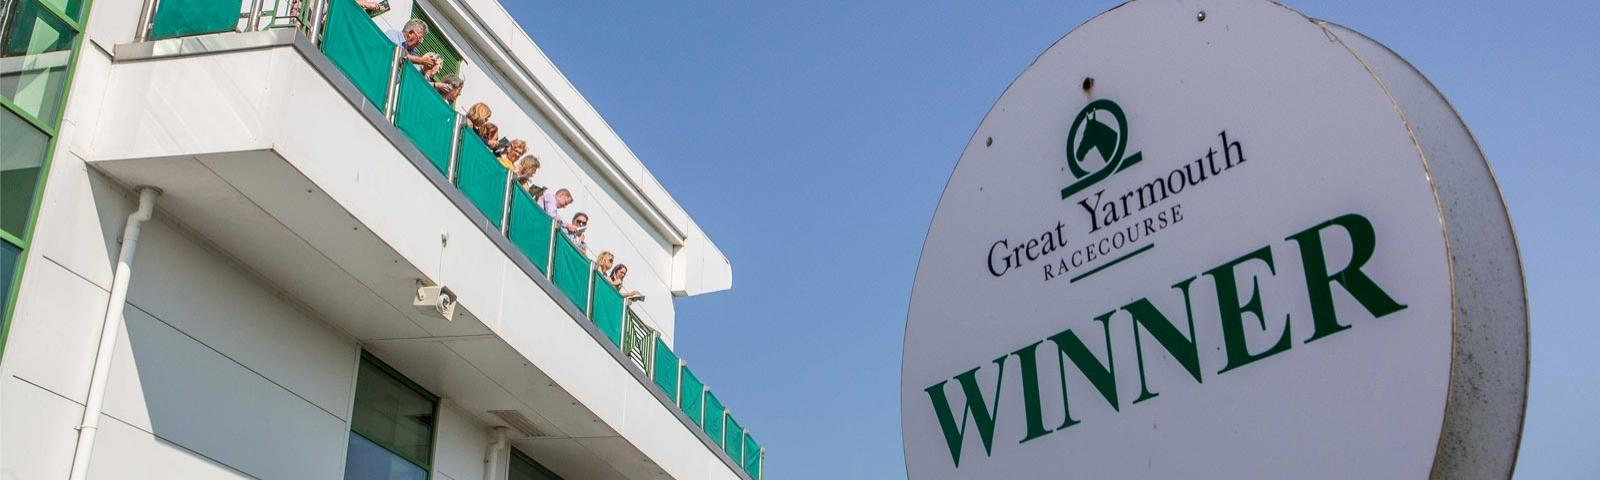 Close up on a winners sign with the grandstand in the background at Great Yarmouth Racecourse.